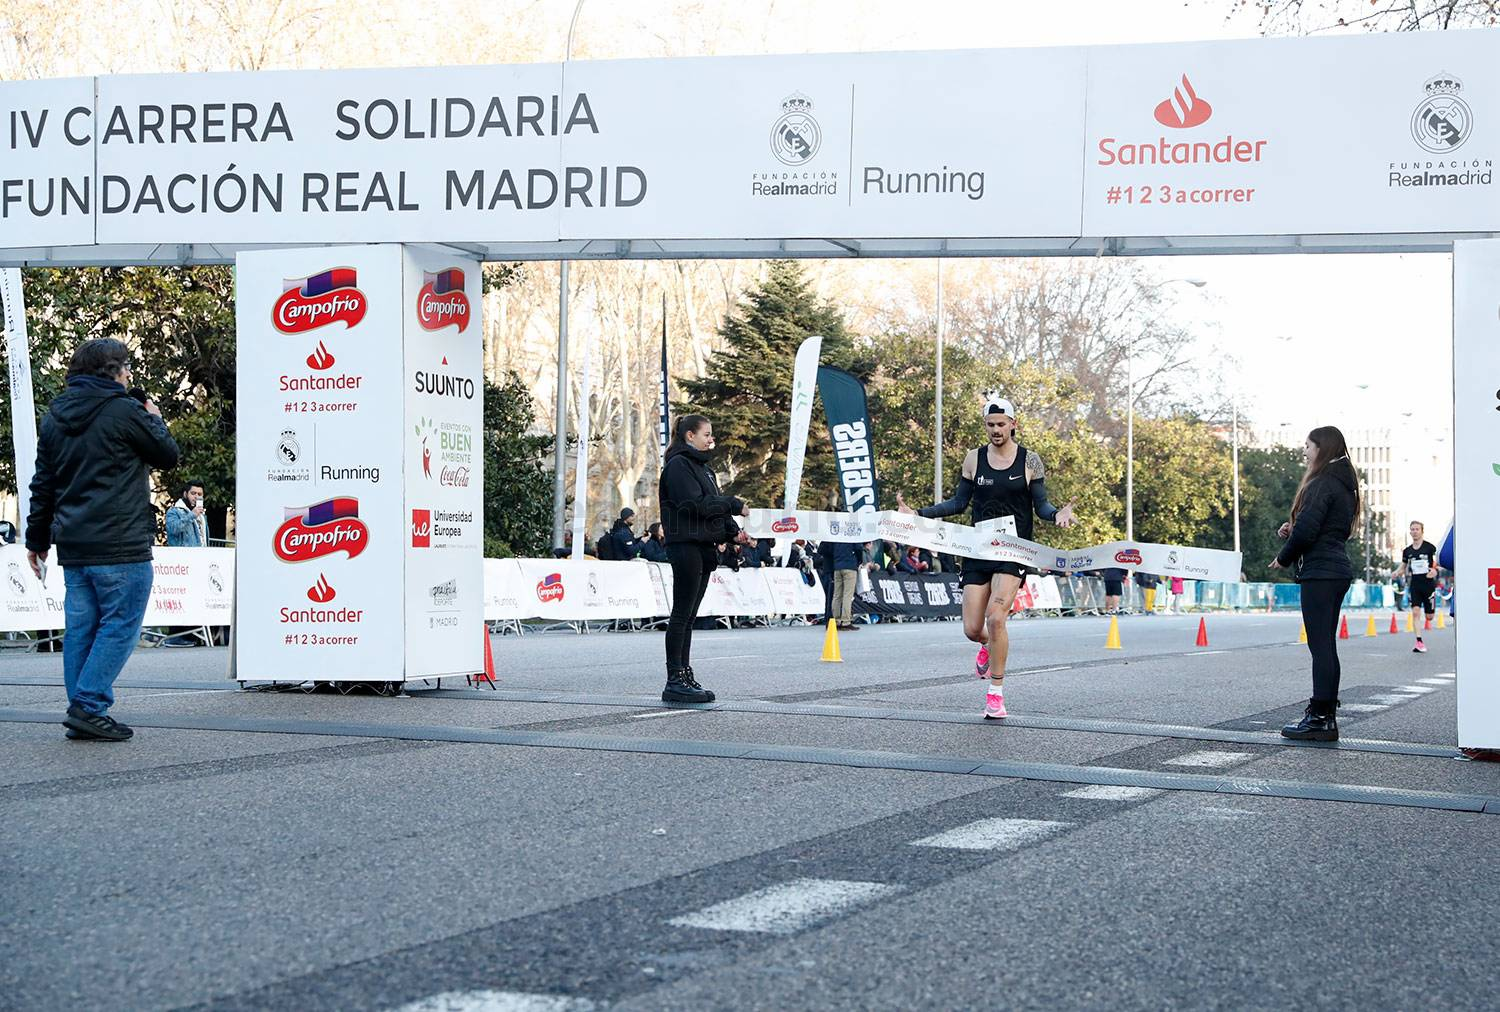 Real Madrid - IV Carrera Solidaria de la Fundación Real Madrid - 26-01-2020